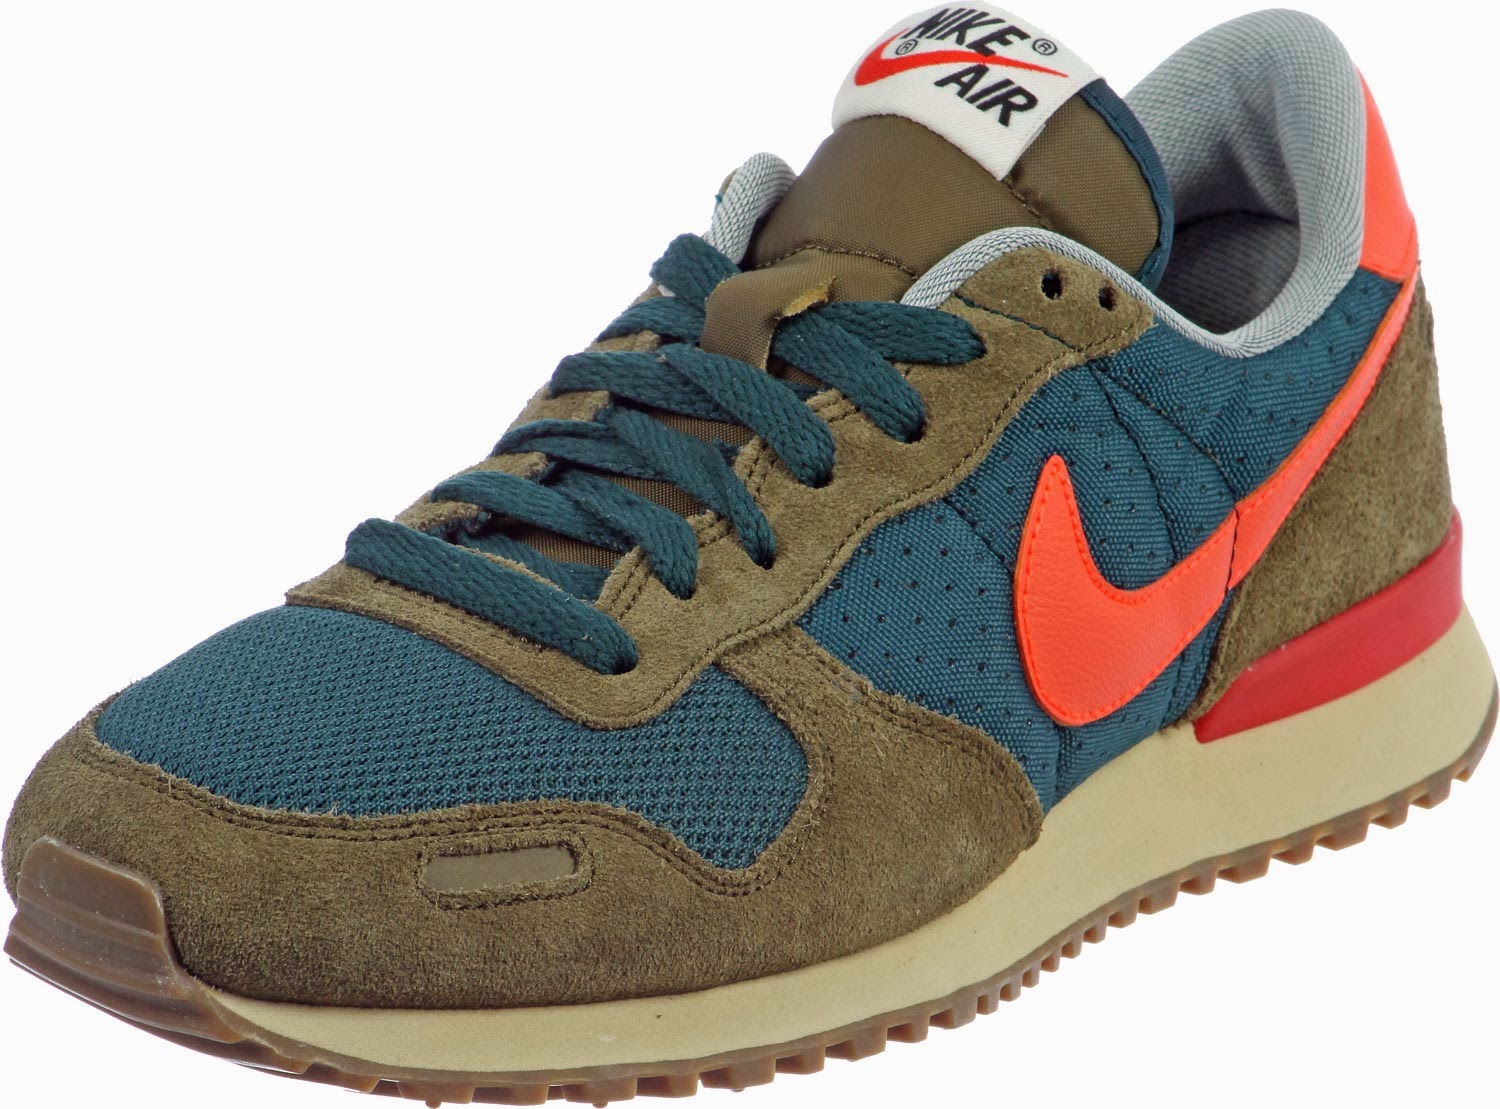 Nike Air Vortex Vintage HD wallpaper